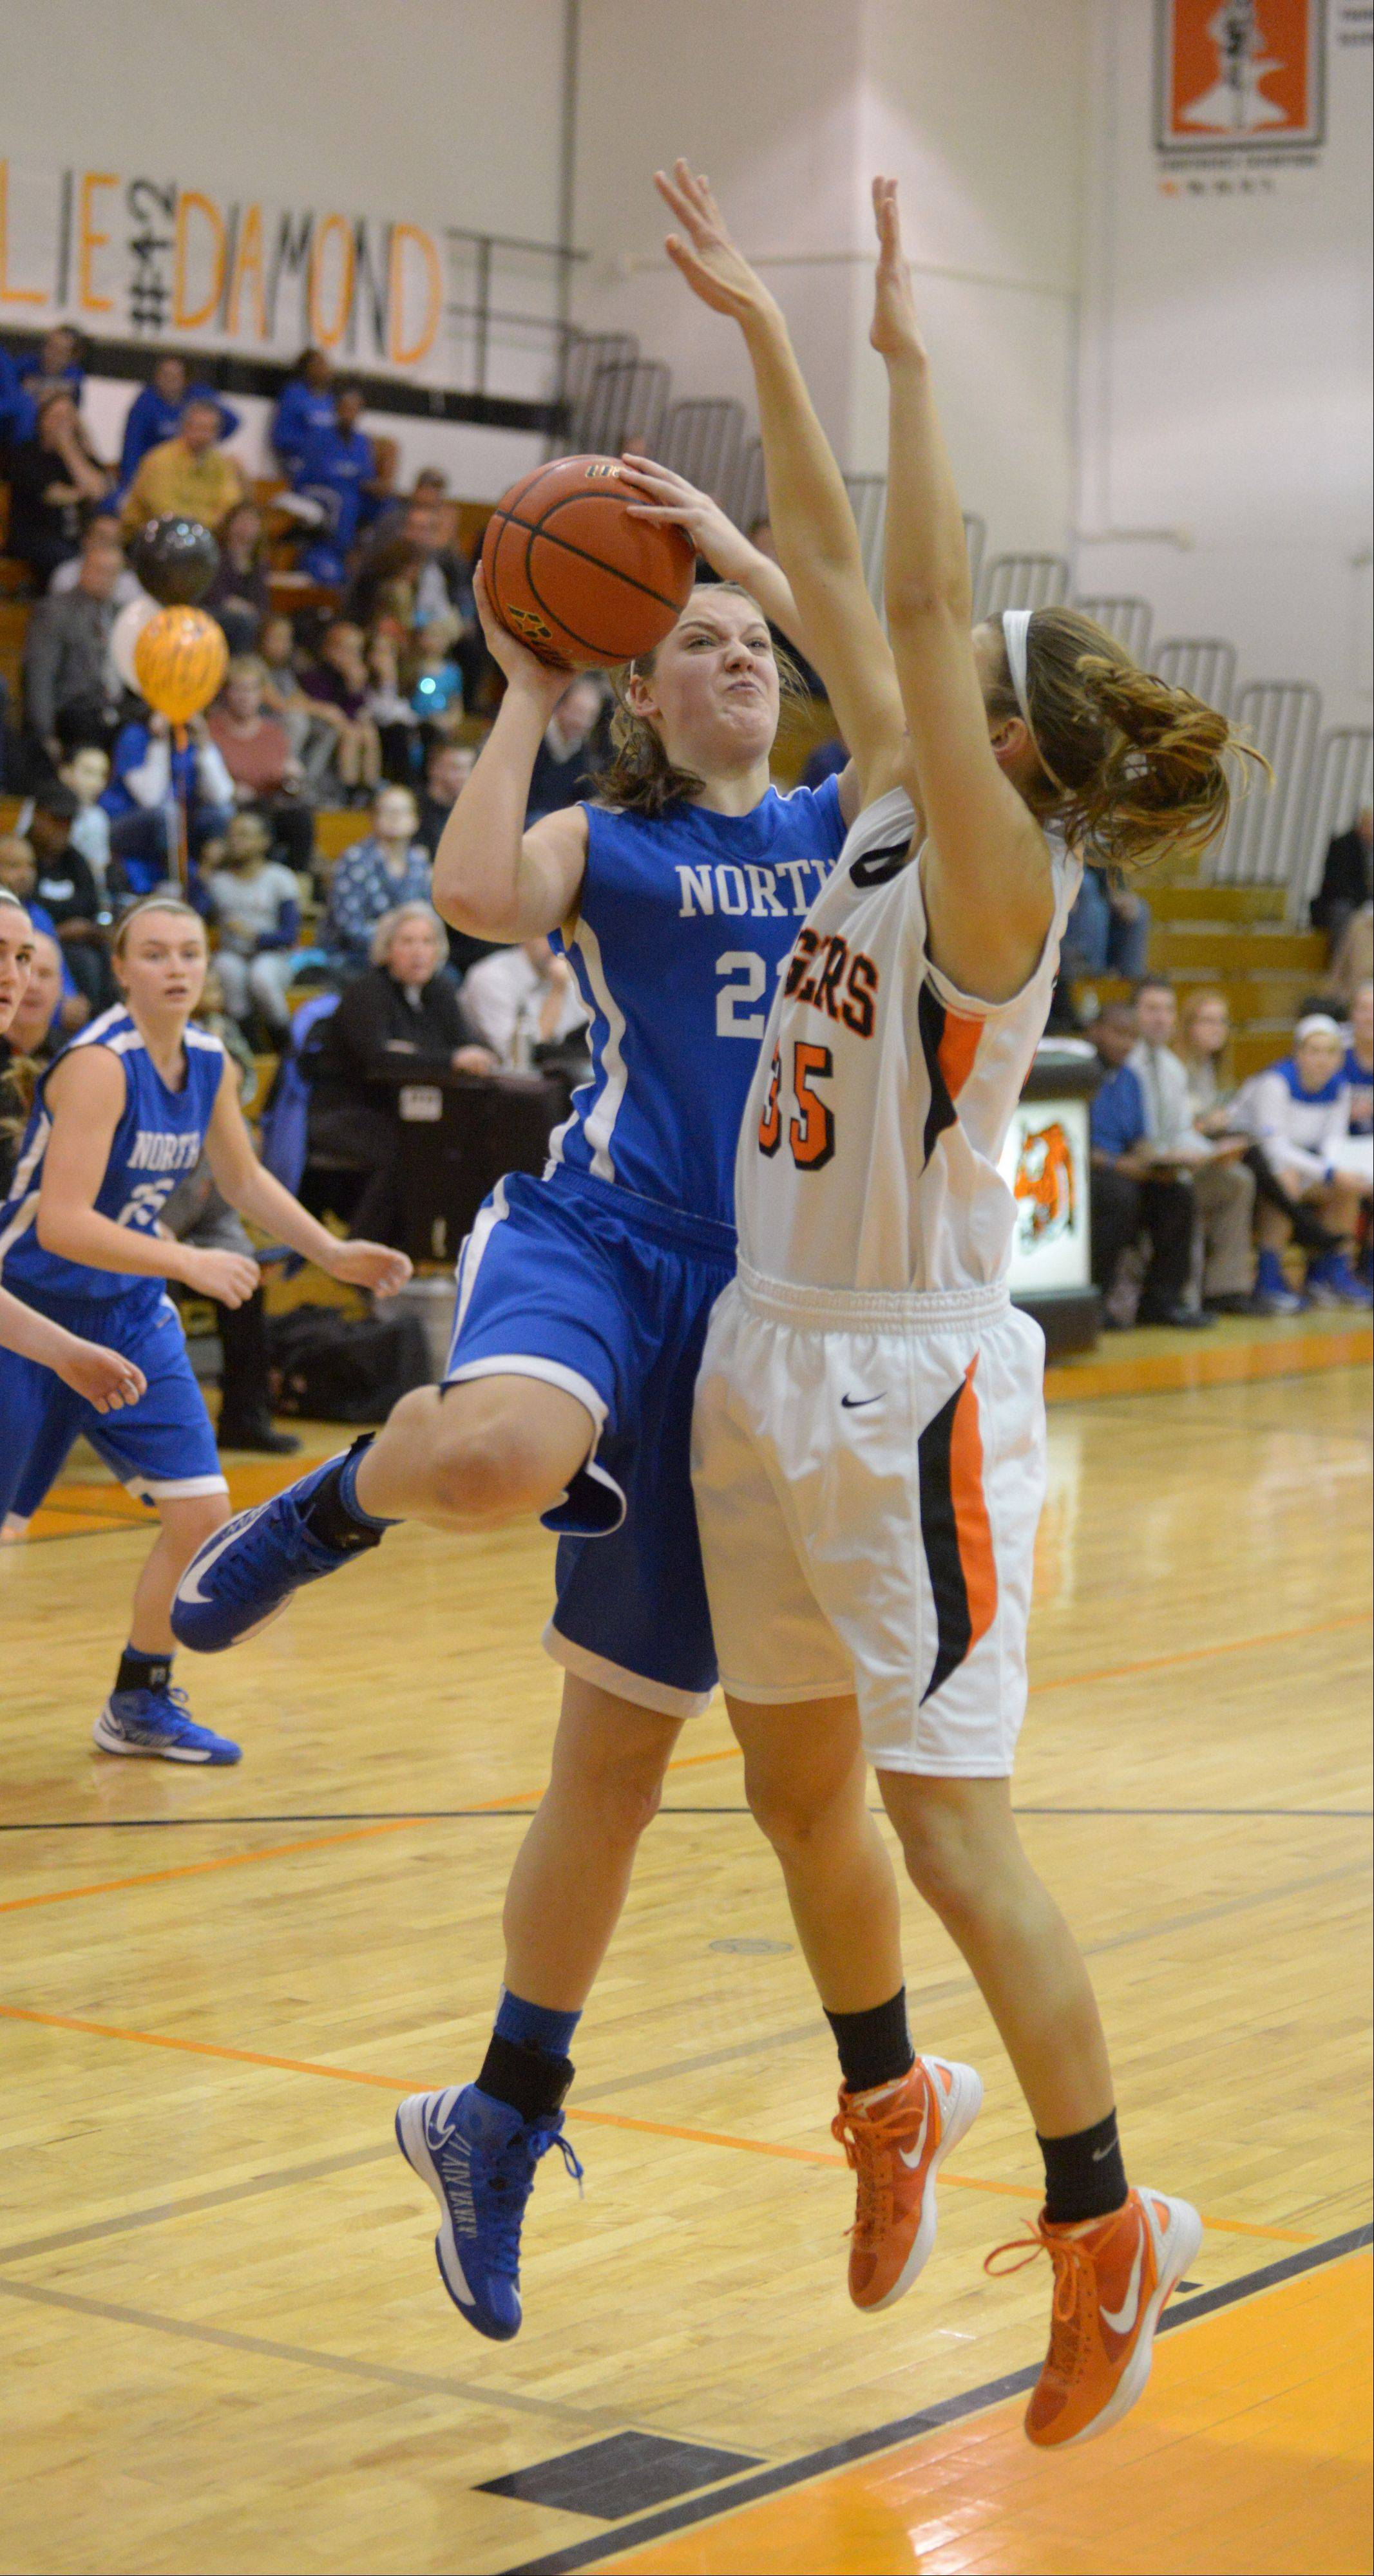 Chrissy Baird of Wheaton North takes a shot over Allie Zappia of Wheaton Warrenville South.